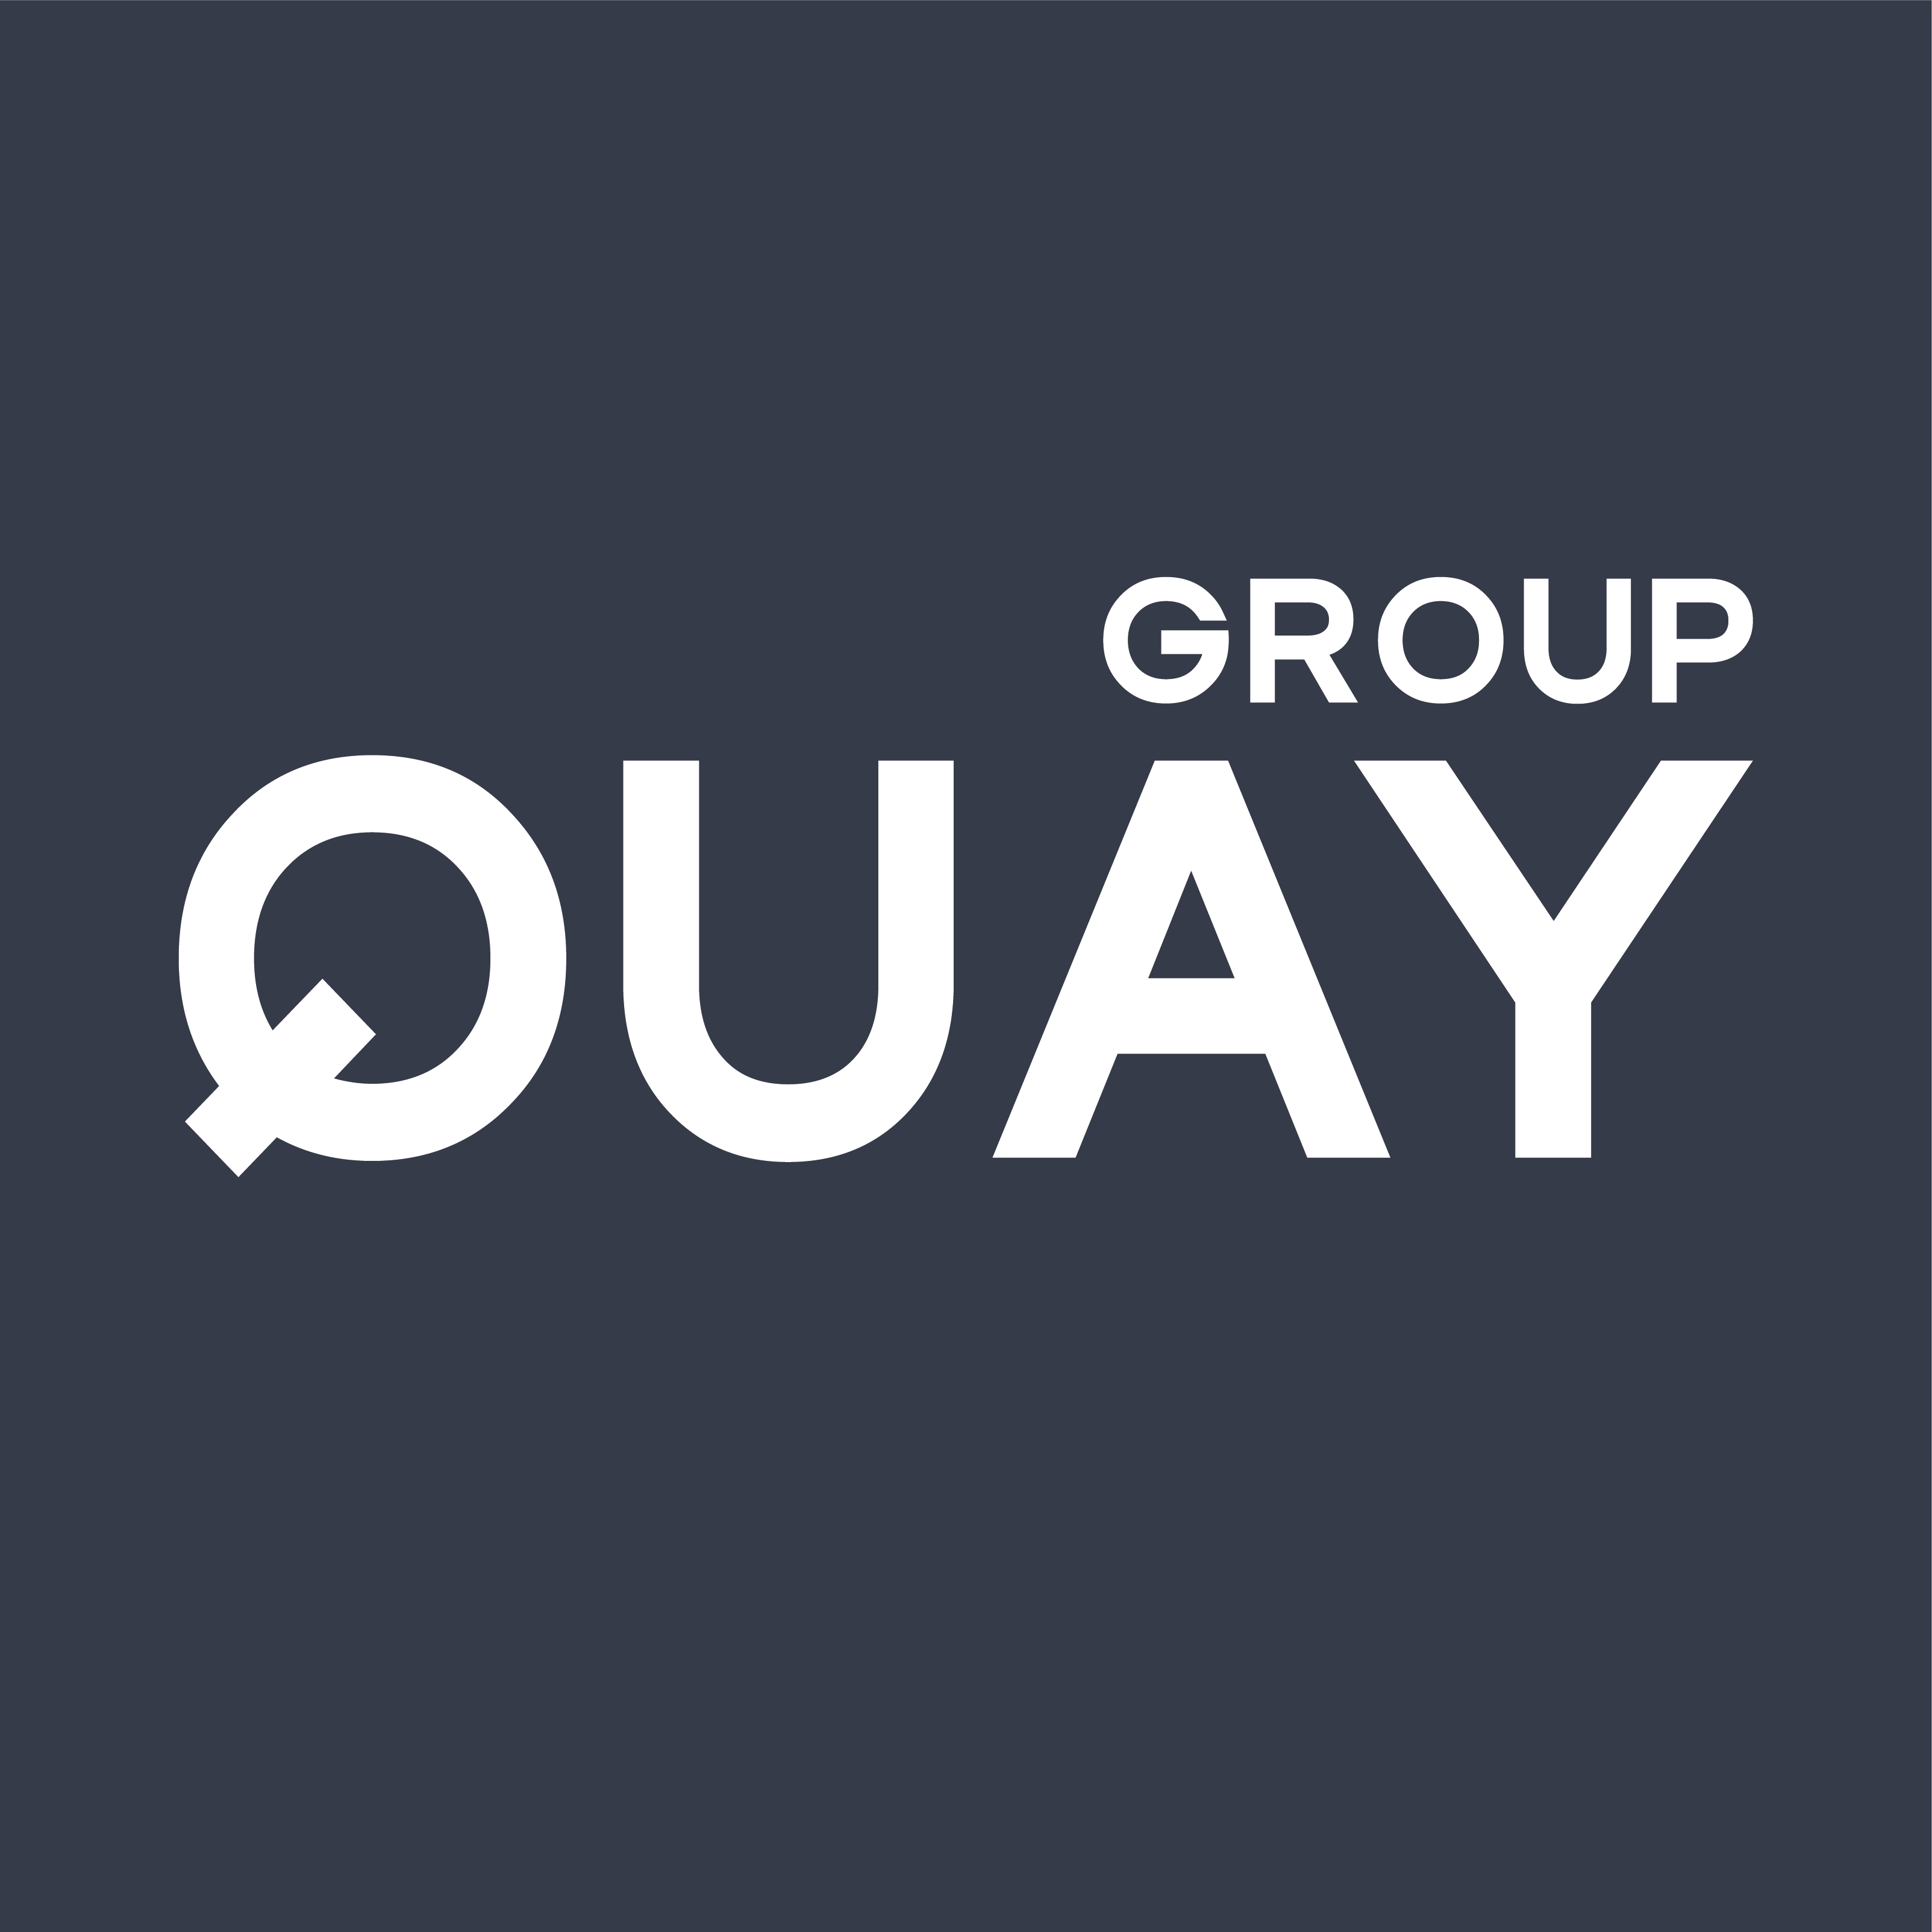 QUAY group